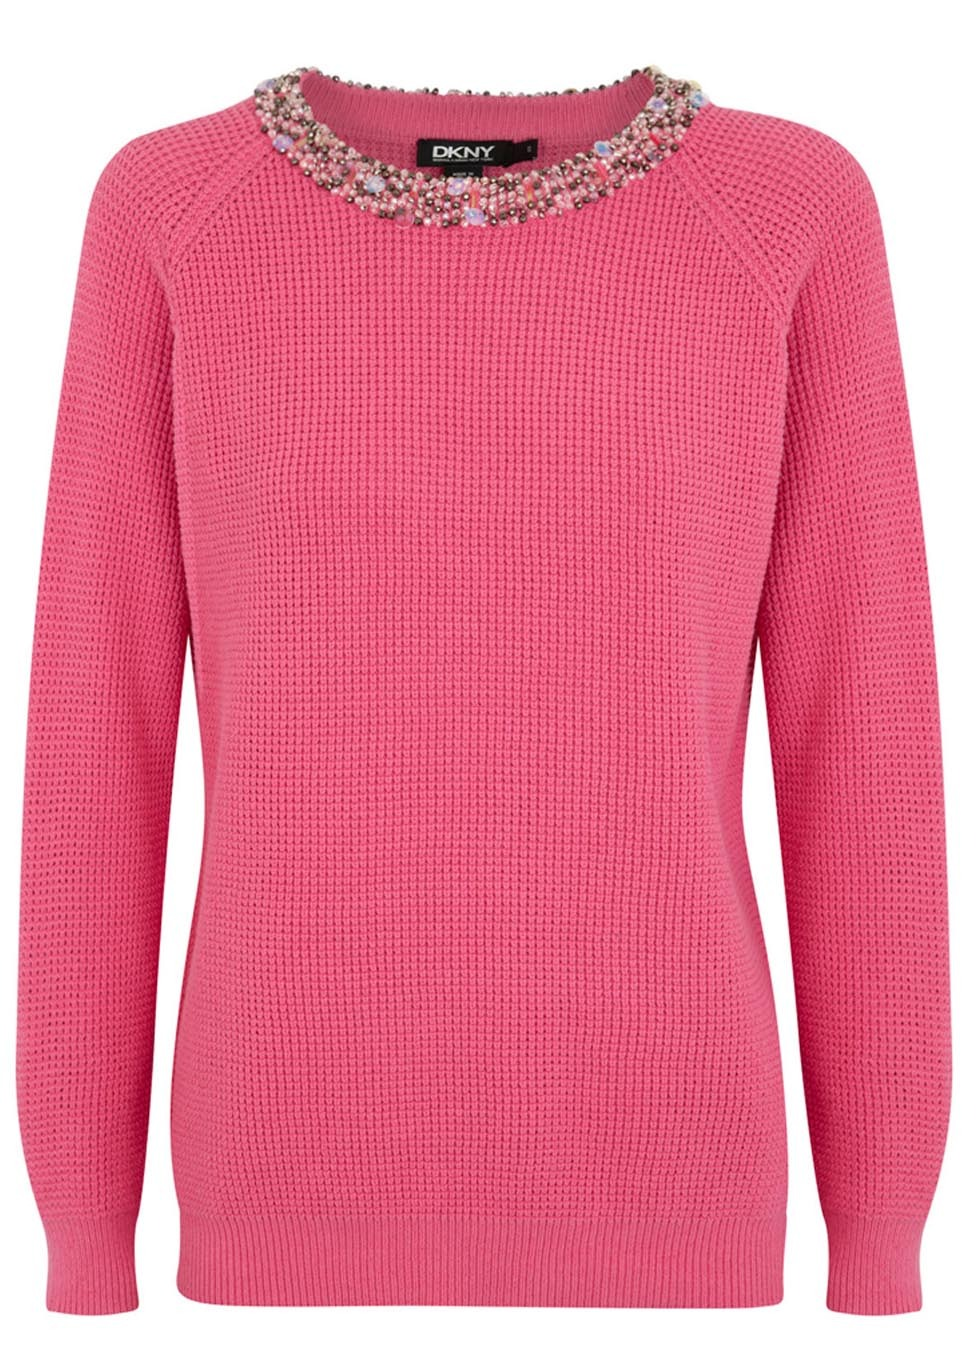 Pink Embellished Jumper - neckline: round neck; pattern: plain; style: standard; predominant colour: pink; occasions: casual, creative work; length: standard; fibres: cotton - mix; fit: empire; sleeve length: long sleeve; sleeve style: standard; texture group: knits/crochet; pattern type: knitted - fine stitch; embellishment: beading; season: s/s 2014; wardrobe: highlight; embellishment location: neck